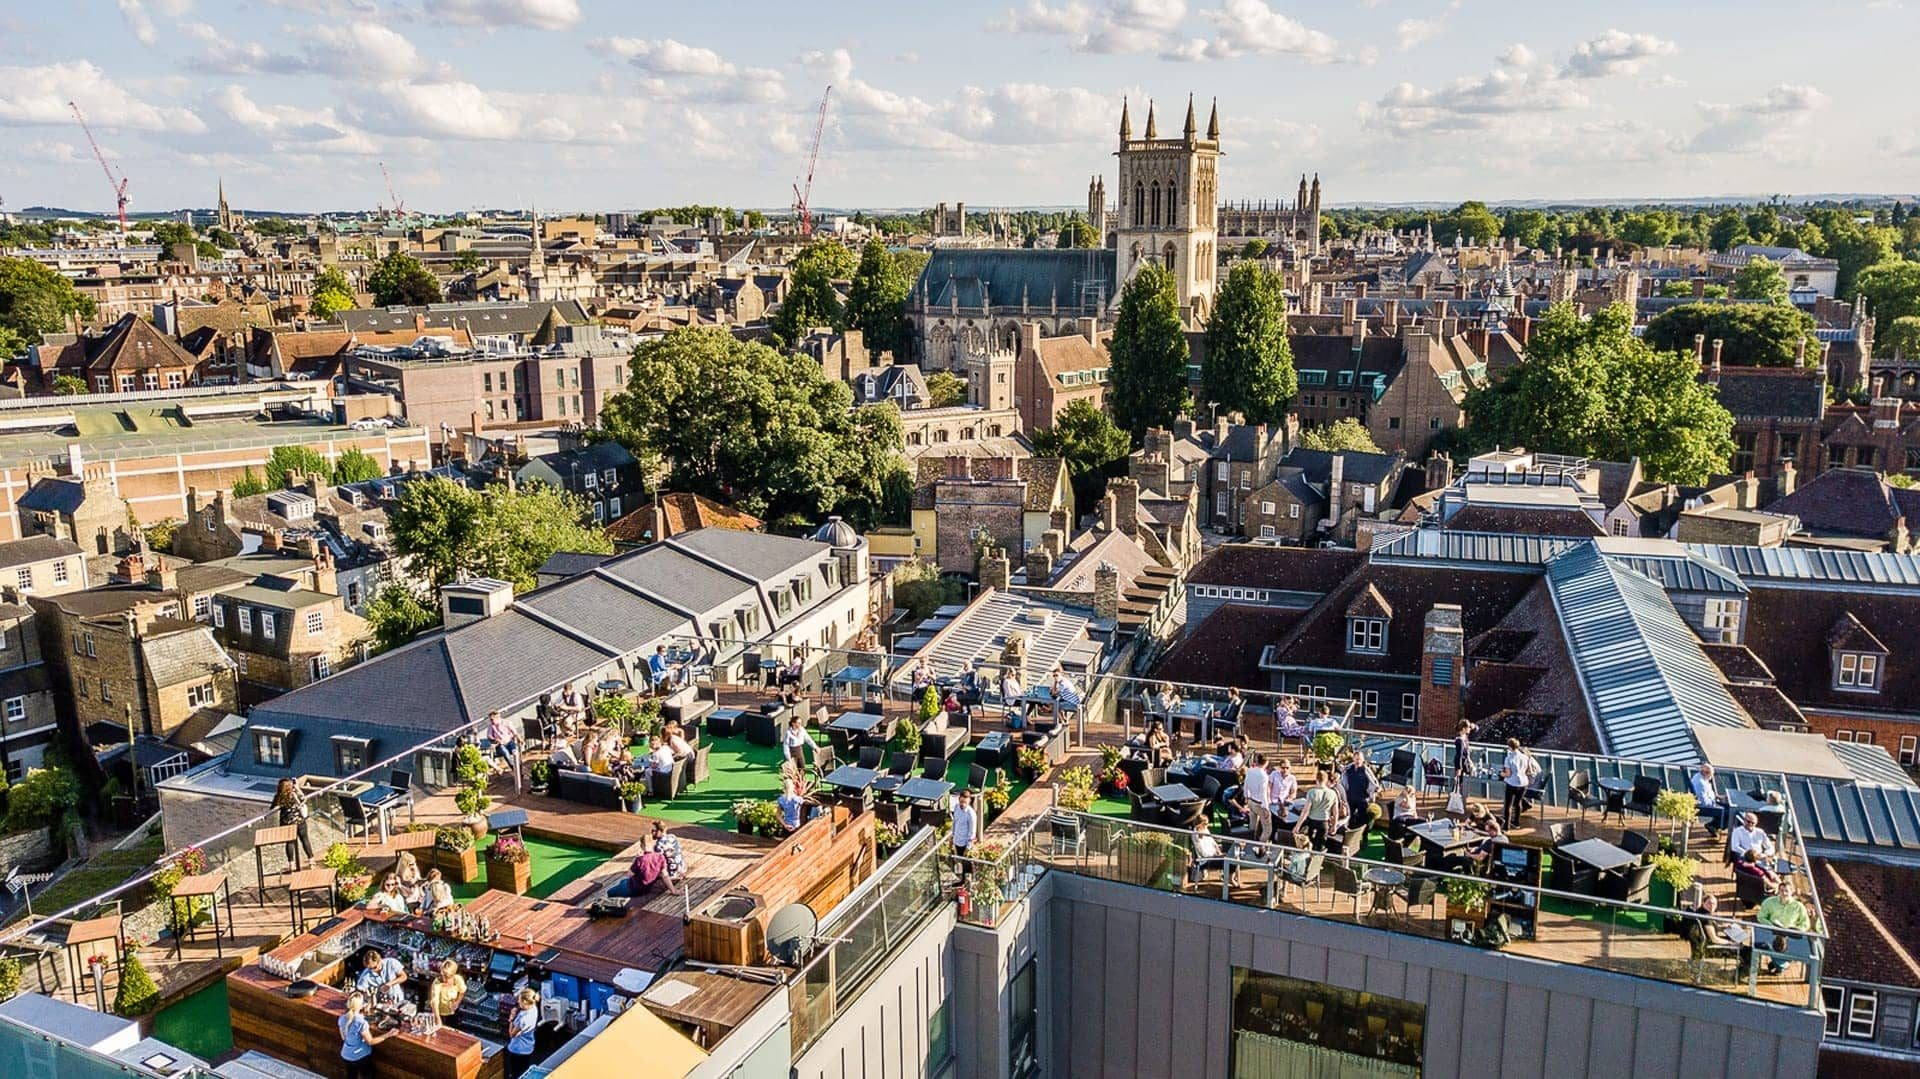 The Iconic Roof Terrace in Cambridge